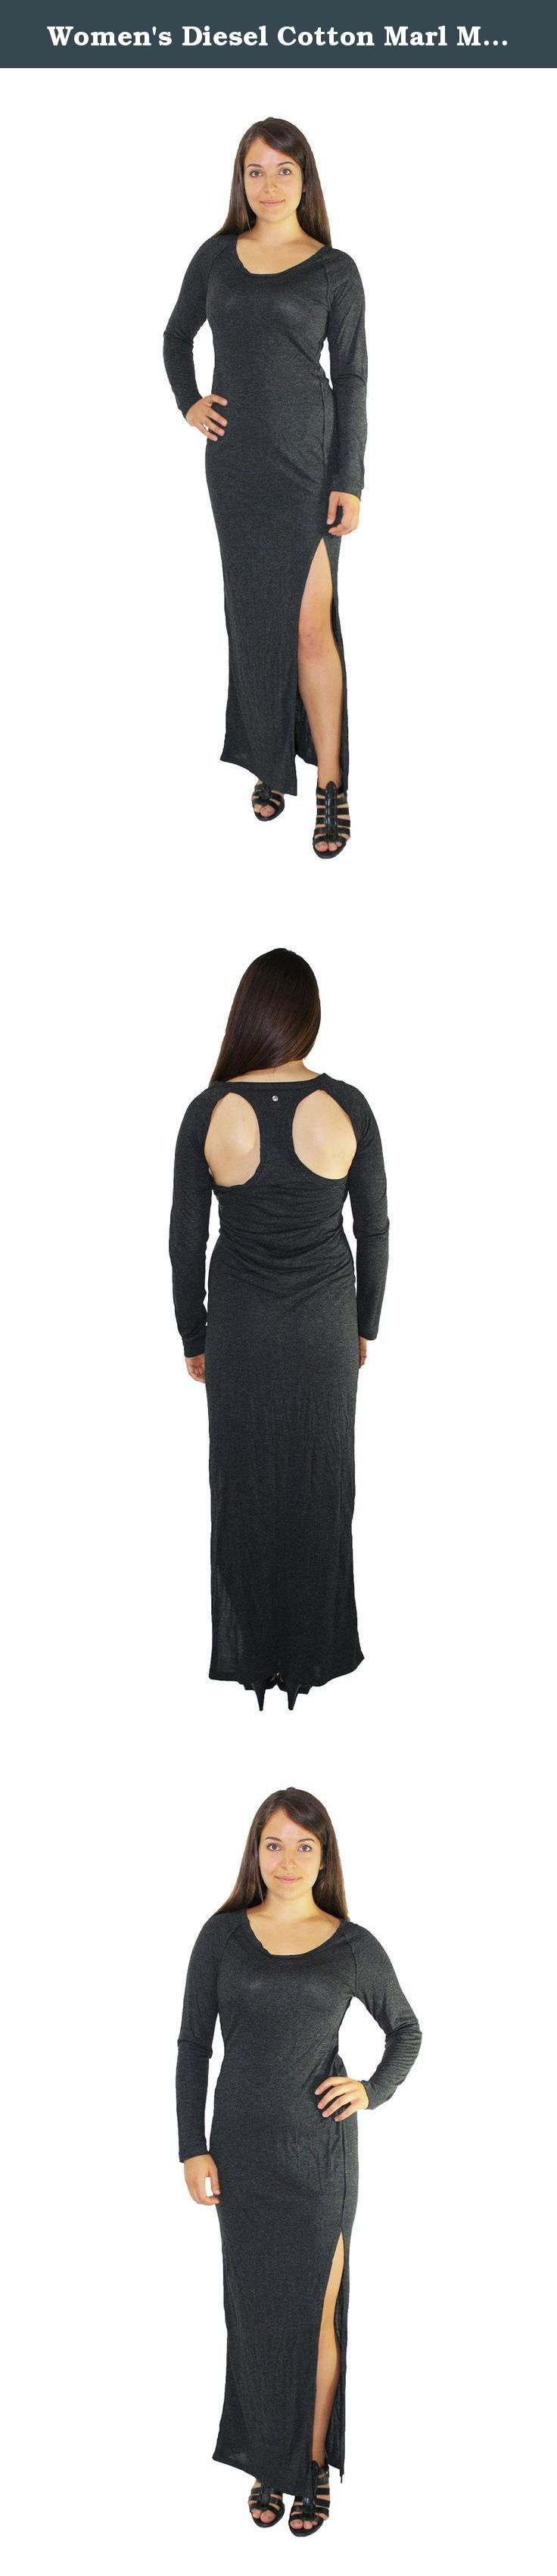 Women's Diesel Cotton Marl Maxi Dress with Back Cut-outs and Slit (grey). In 1978 Rosso was working for a clothing manufacturer called Moltex, which was owned by Adriano Goldschmied. He used a loan from his father to buy a 40% holding in the company, which changed its name to Diesel, and marketed jeans under the Diesel brand and many others. Rosso bought out Goldschmied's interest in the Diesel brand name in 1985 for US$500,000.[1] Rosso has said that he learned marketing from the US...